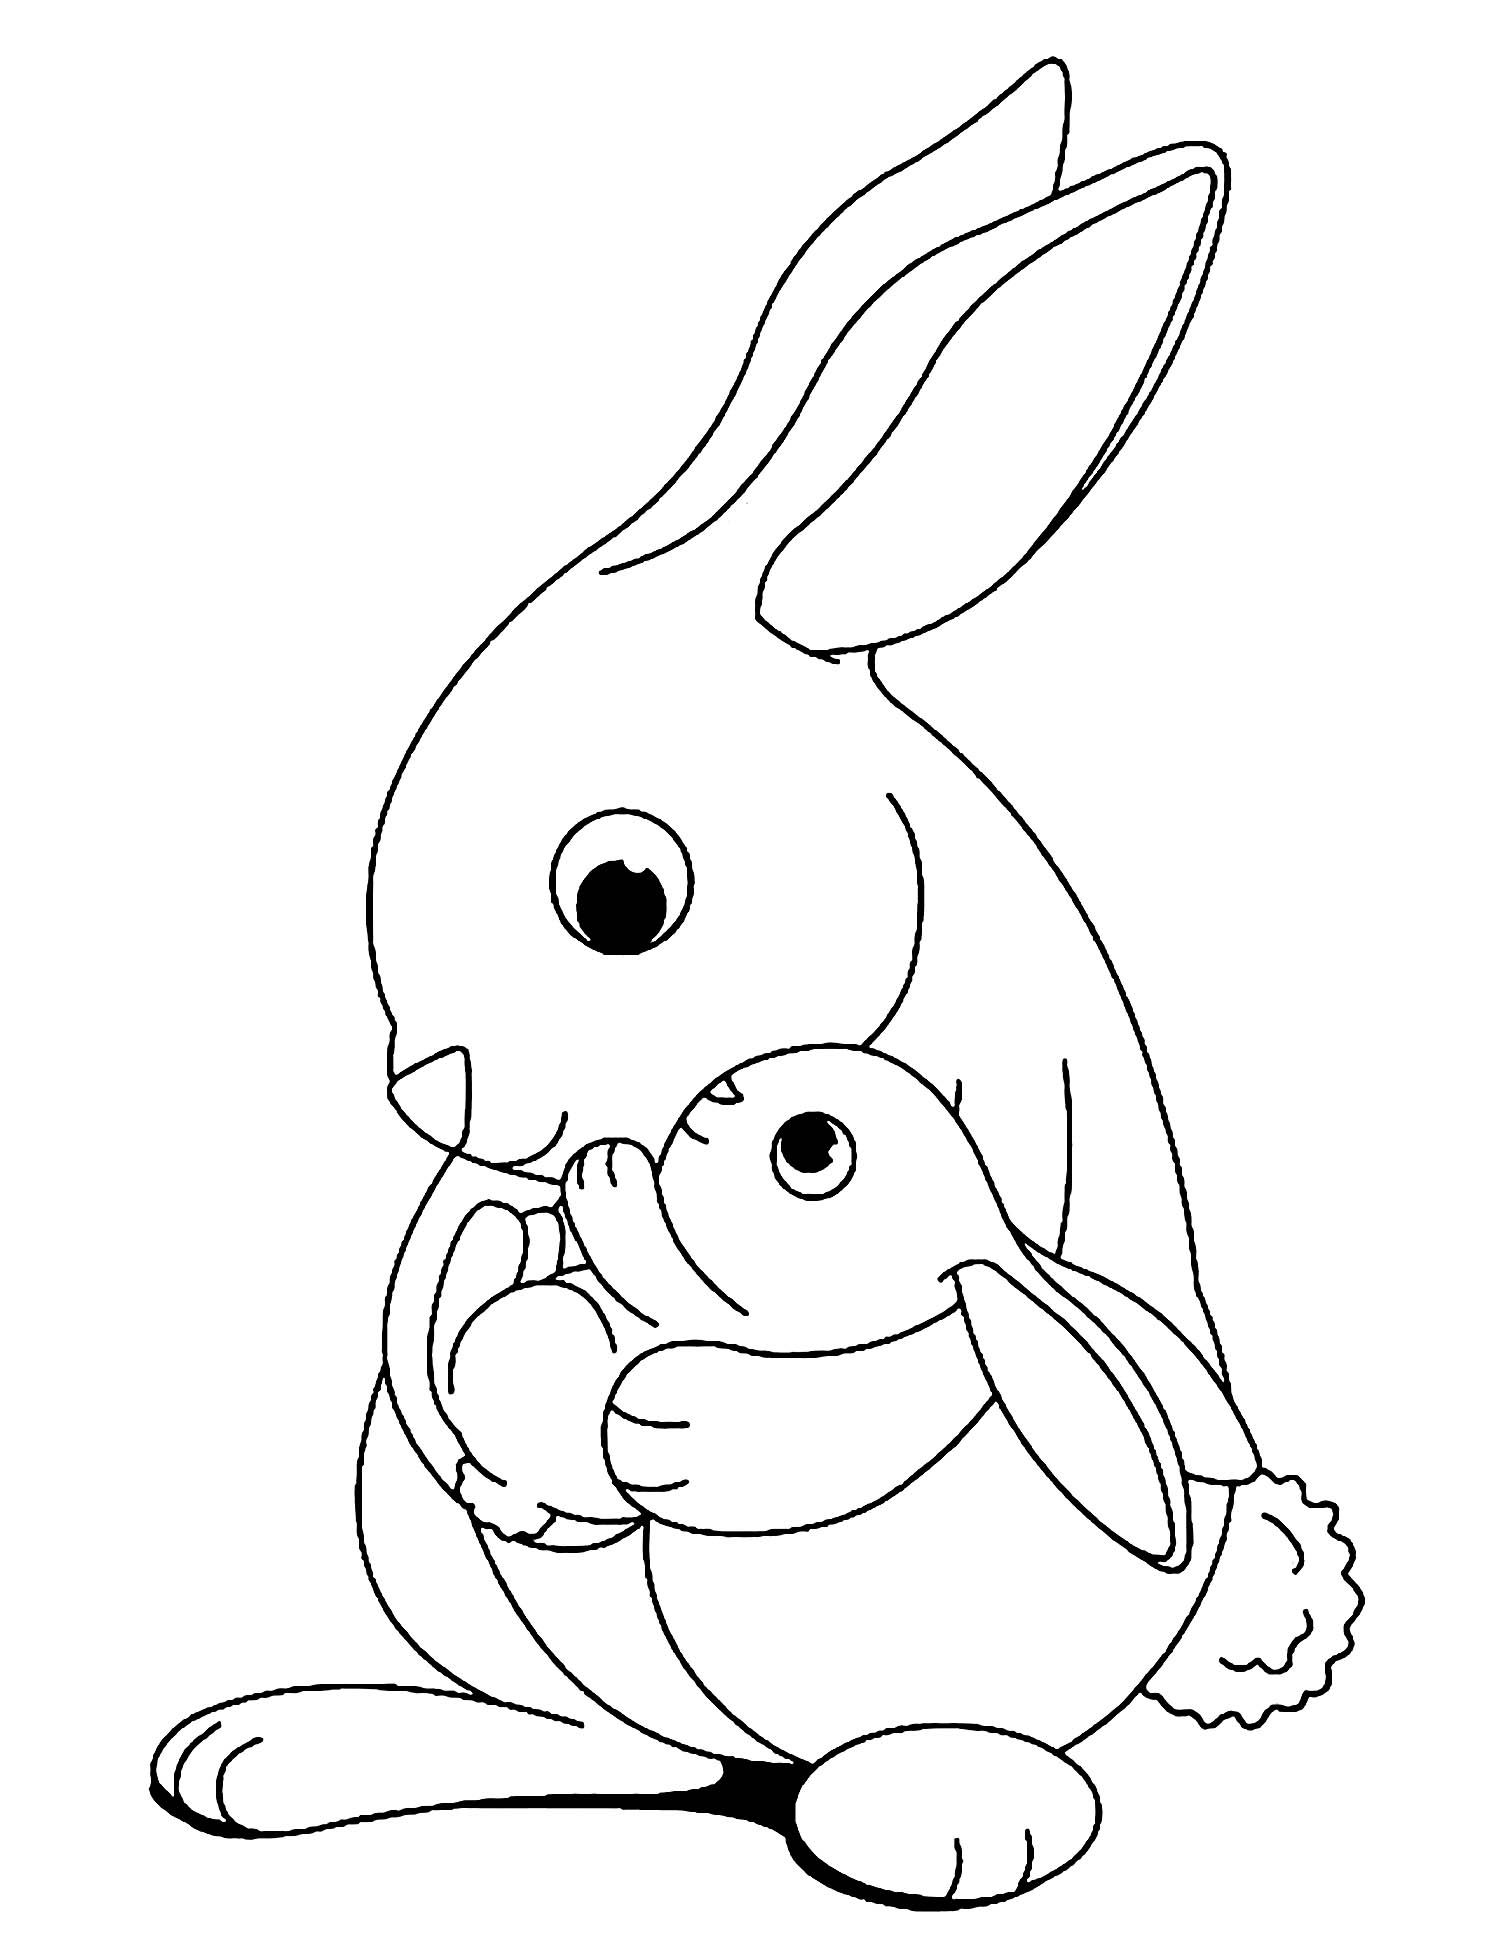 bunny coloring pictures rabbit for children rabbit kids coloring pages bunny coloring pictures